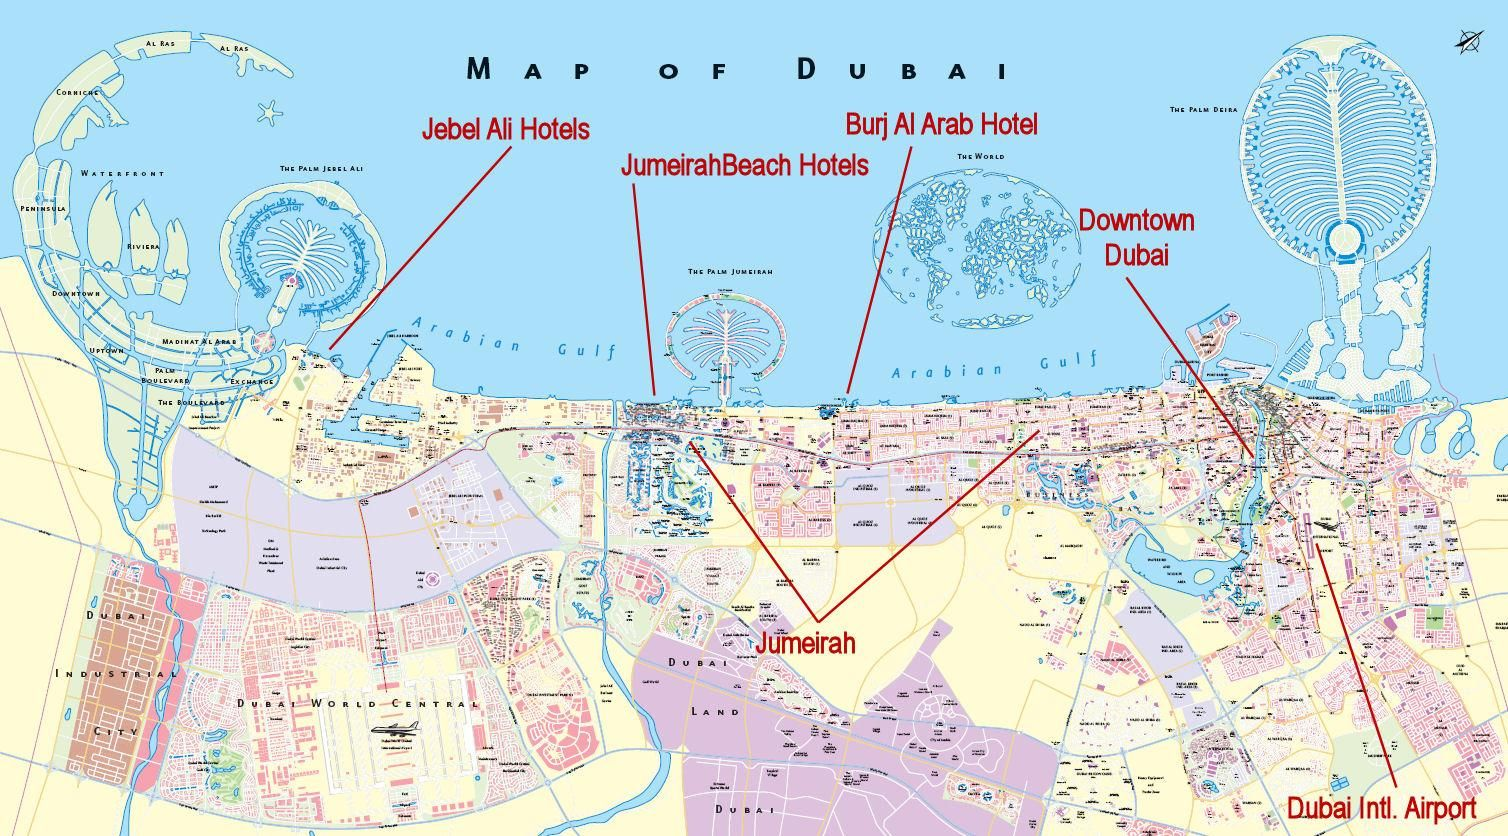 Complete dubai city map plus travel information guide for complete dubai city map plus travel information guide for travelerstourist map dubaidubai gumiabroncs Image collections